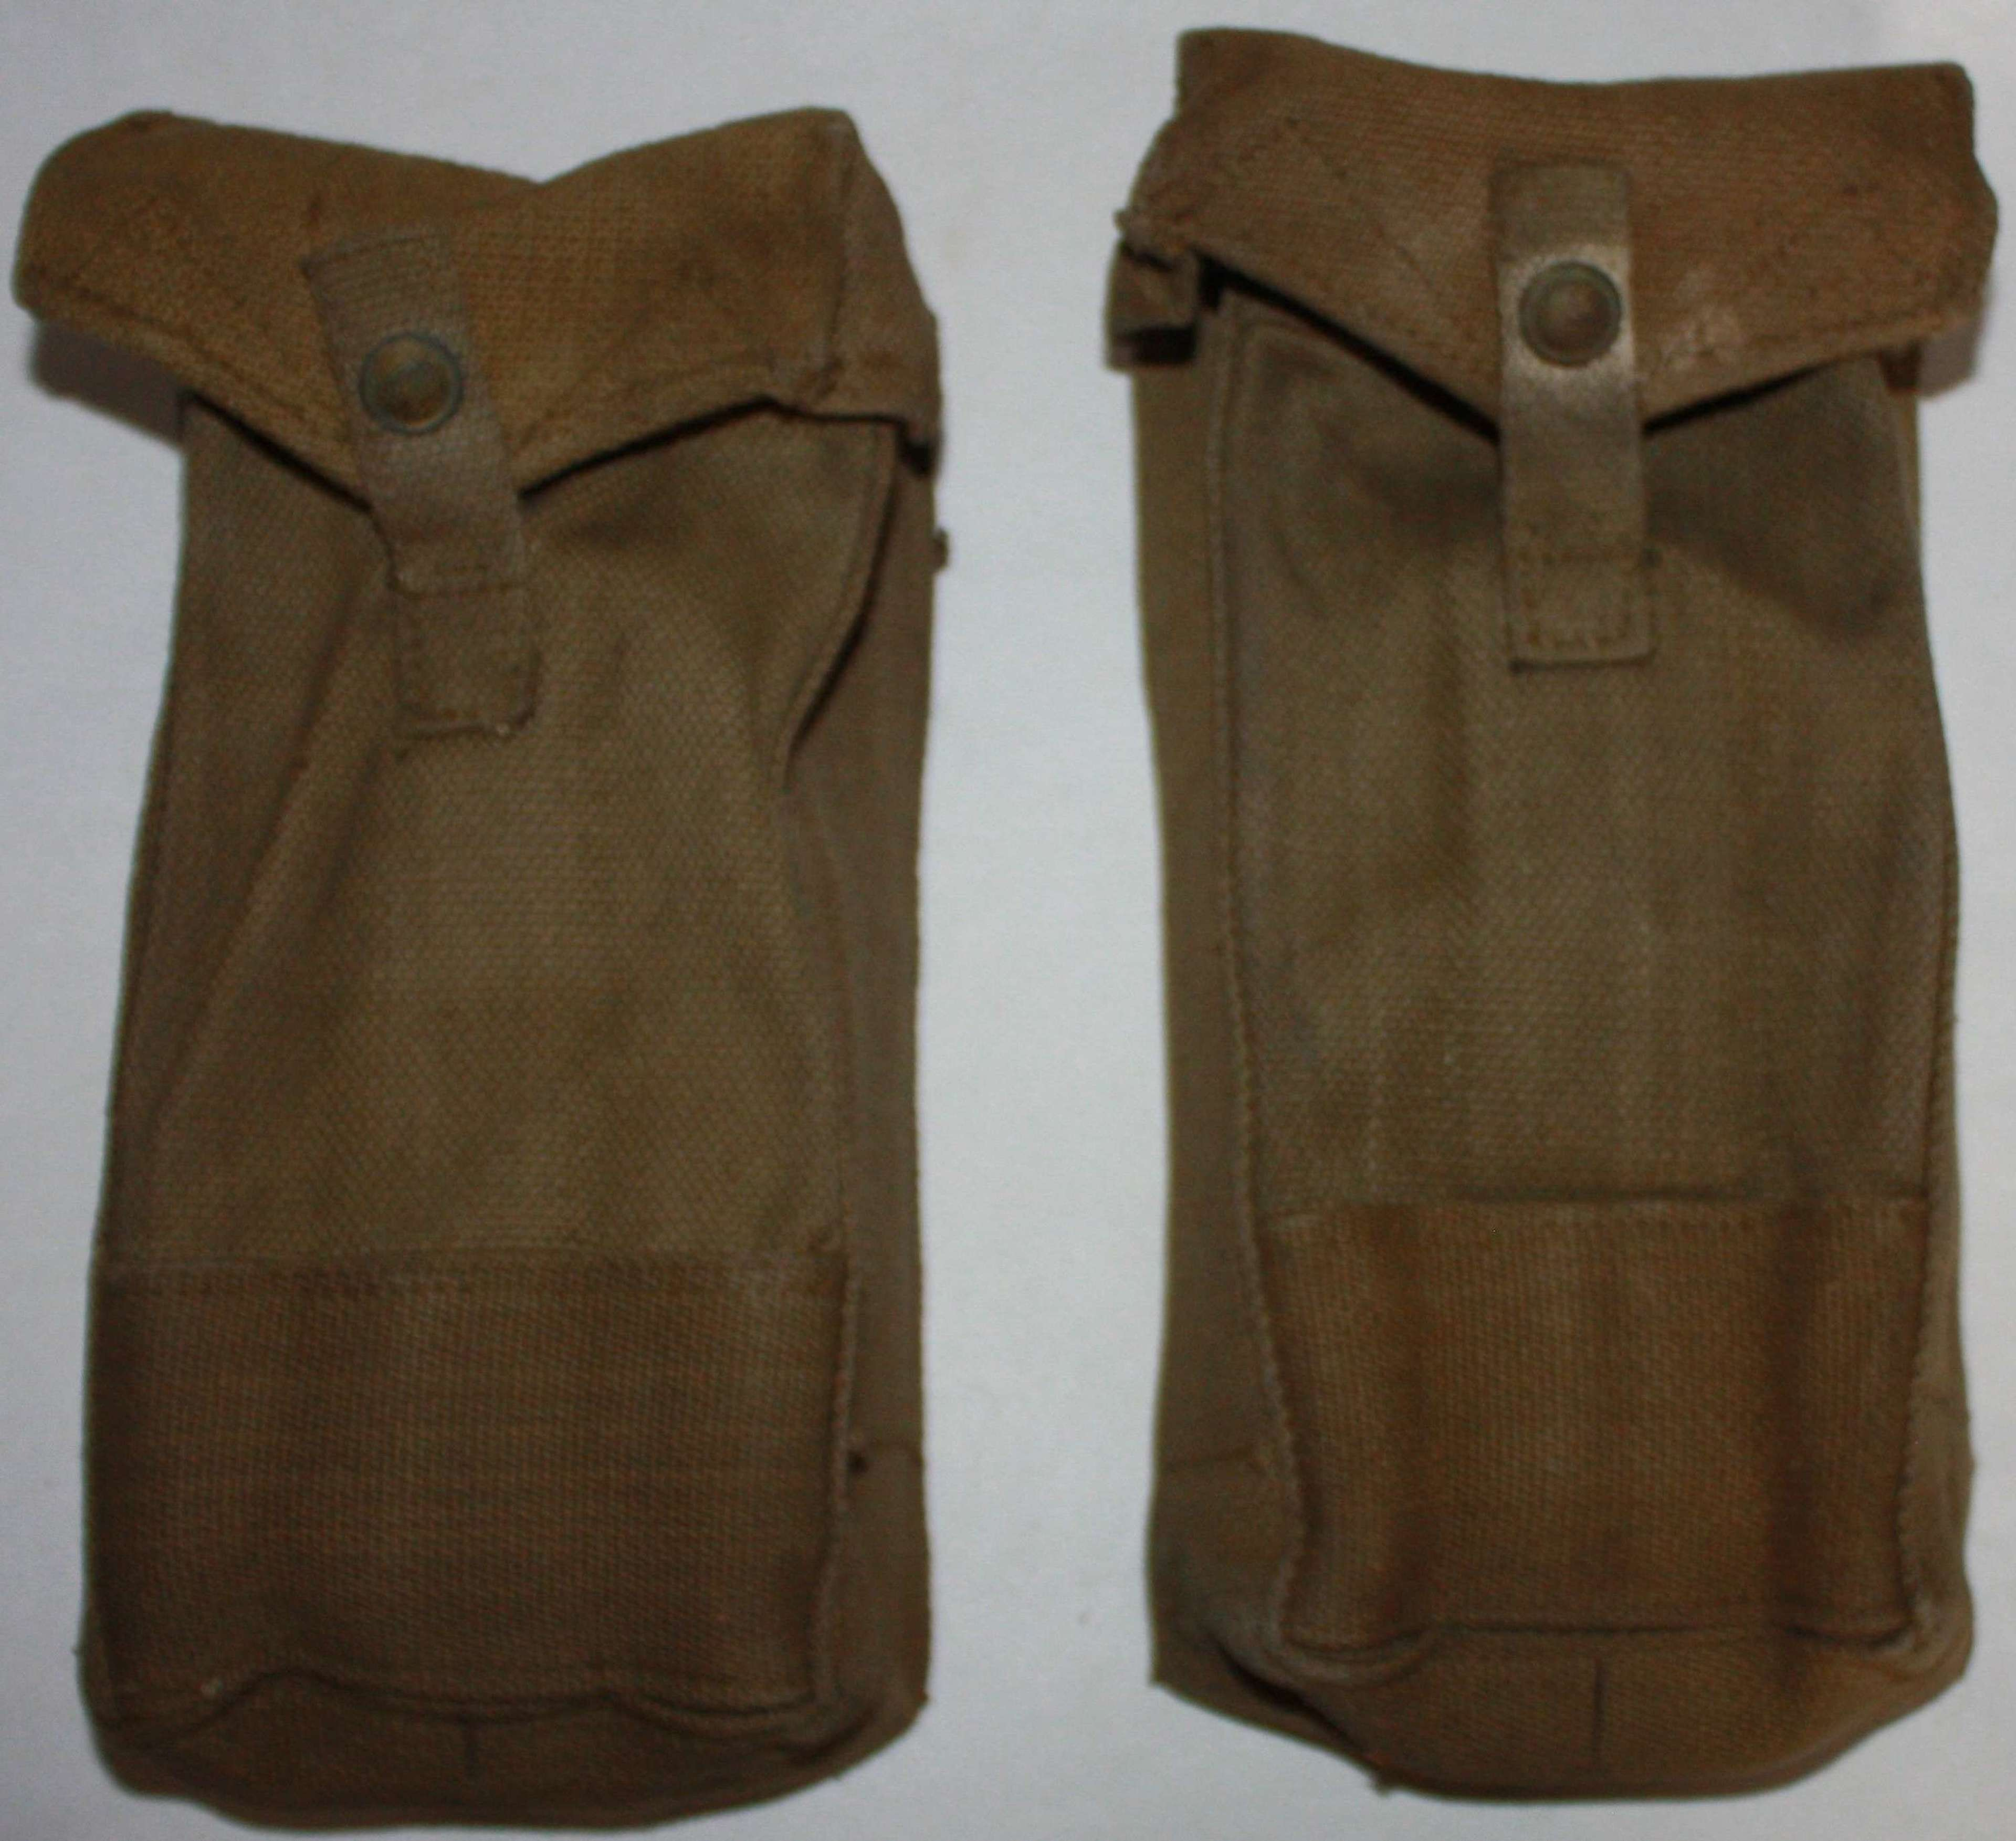 A GOOD USED MATCHING PAIR OF MKIII 37 PATTERN WEBBING AMMO POUCHES